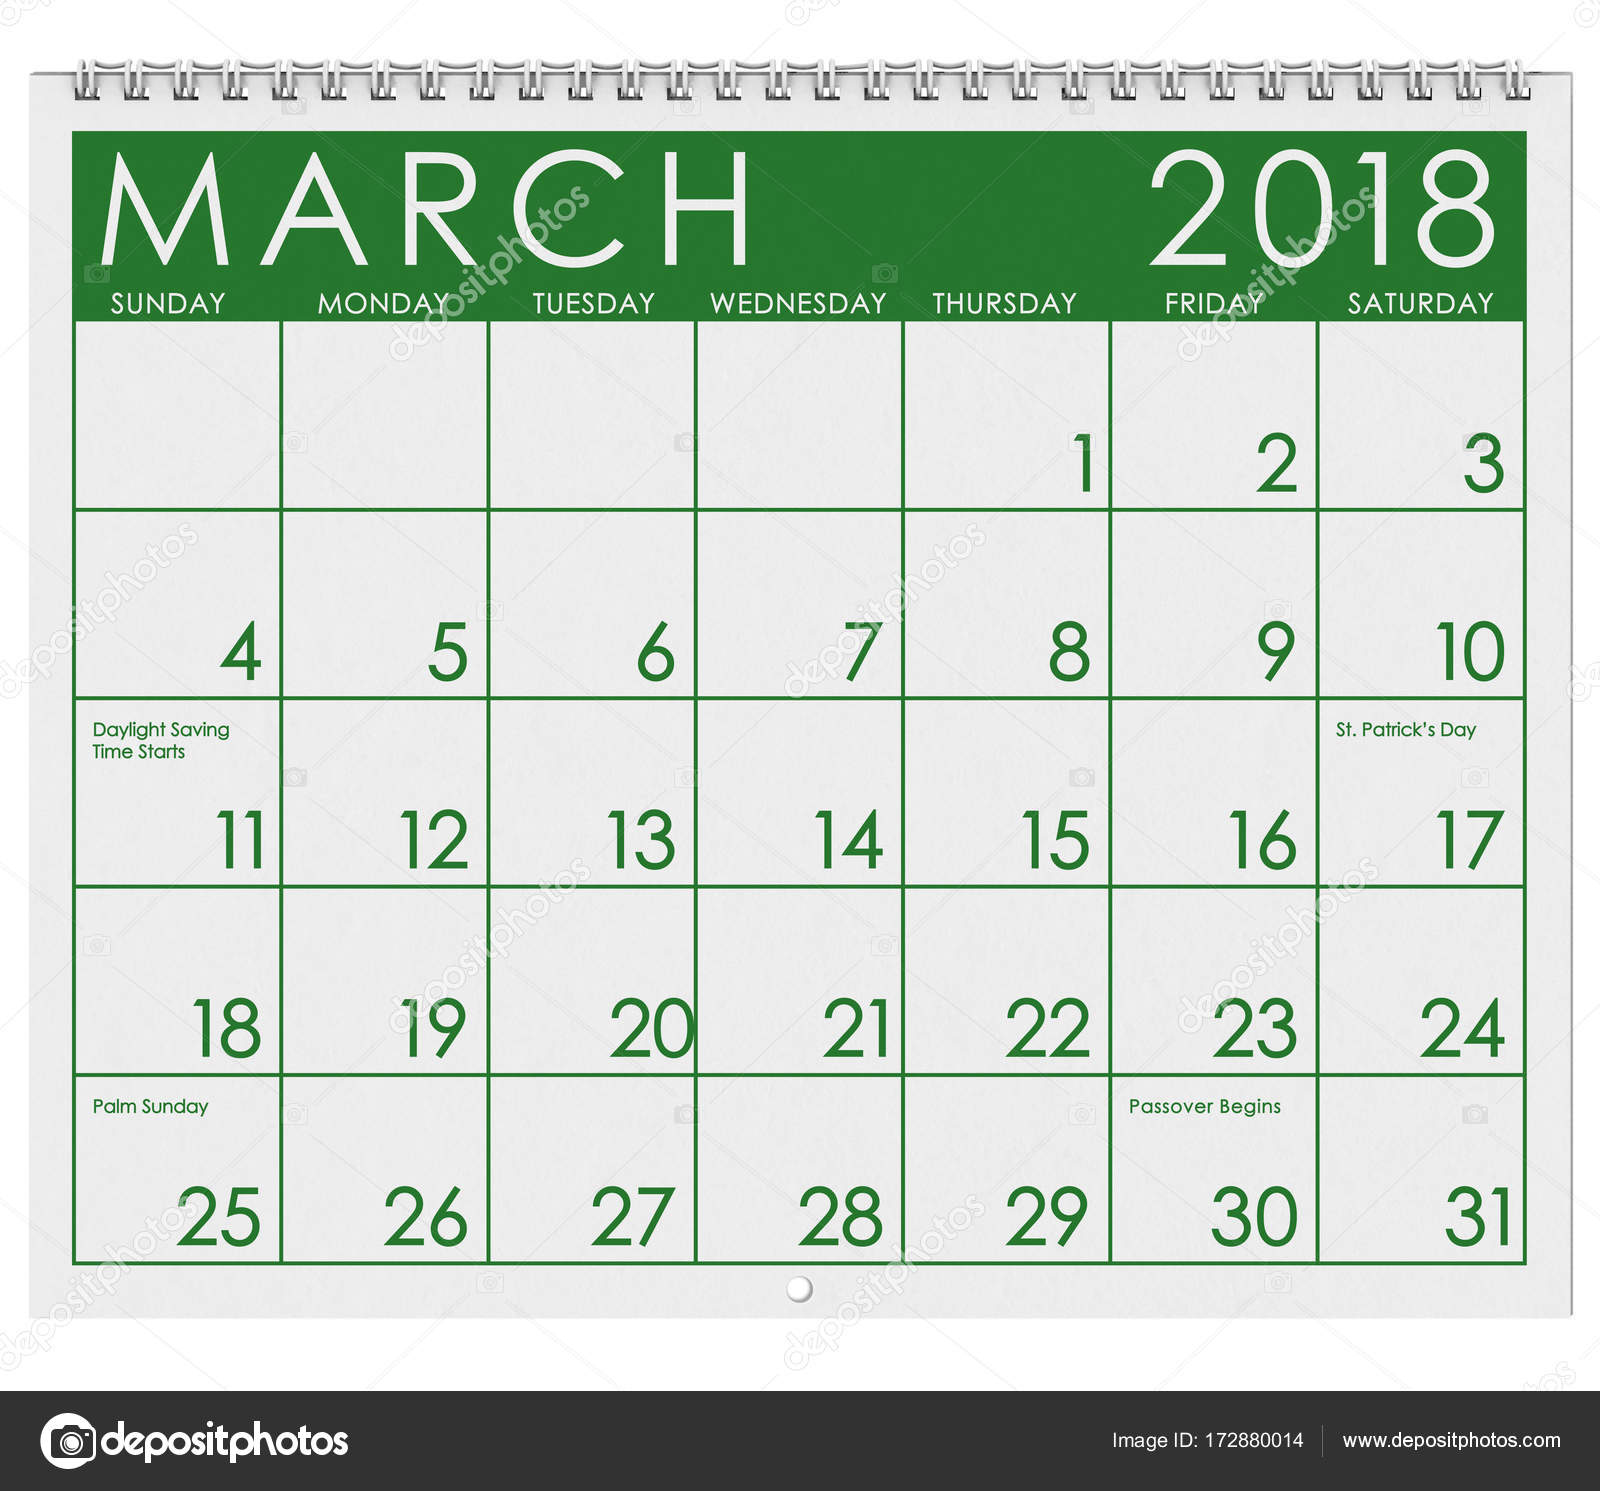 2018 Calendar: Month Of March With St. Patrick's Day — Stock Photo